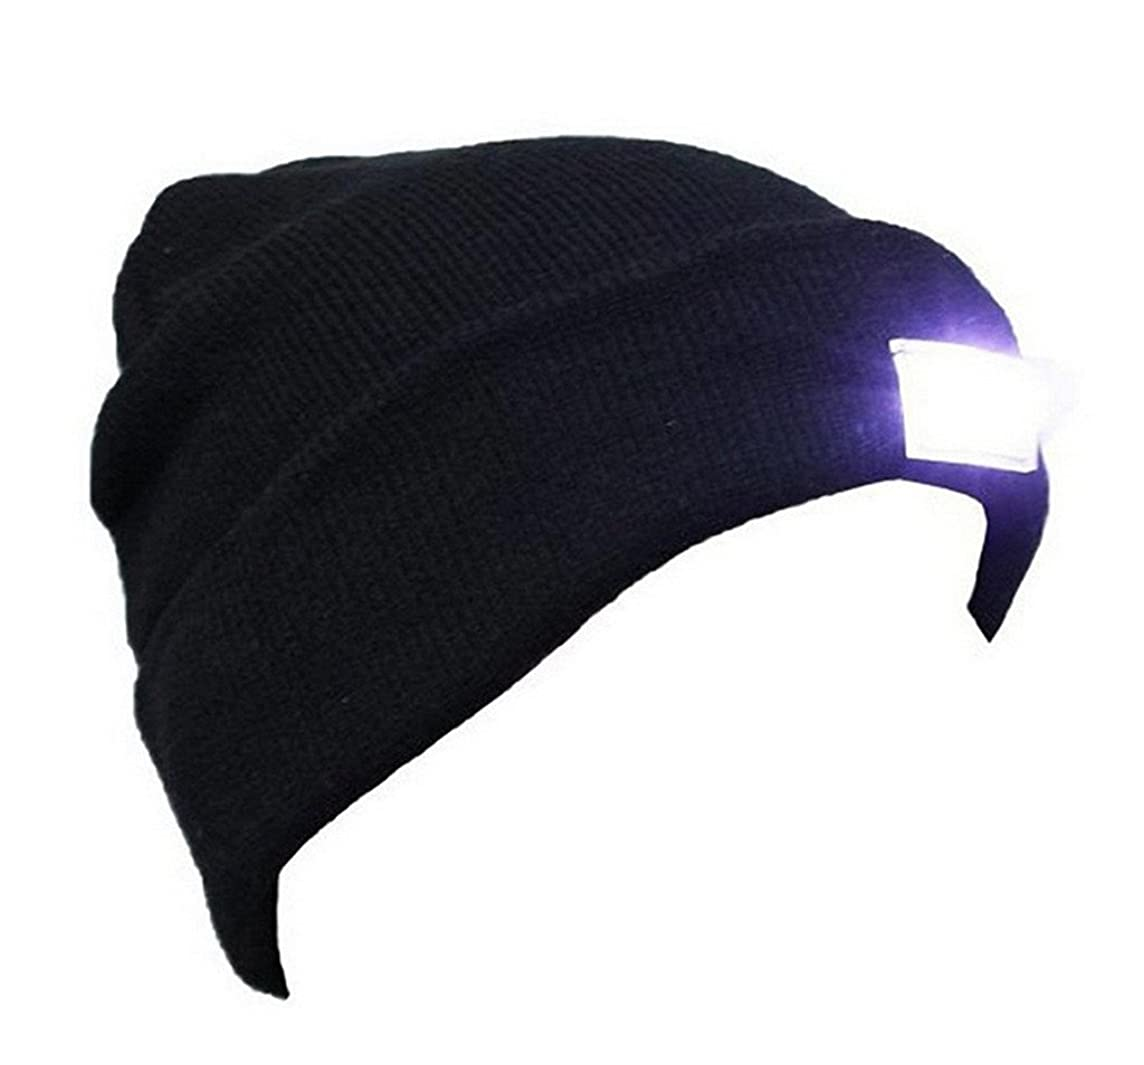 VANCIC Ultra Bright 5 LED Hands Free Unisex Lighted Beanie Cap/Hat Power Stocking - 12000MCD of Perfect Flashlight for Outdoors Sports,Hunting, Camping, Grilling, Jogging, Fishing, Handyman Working